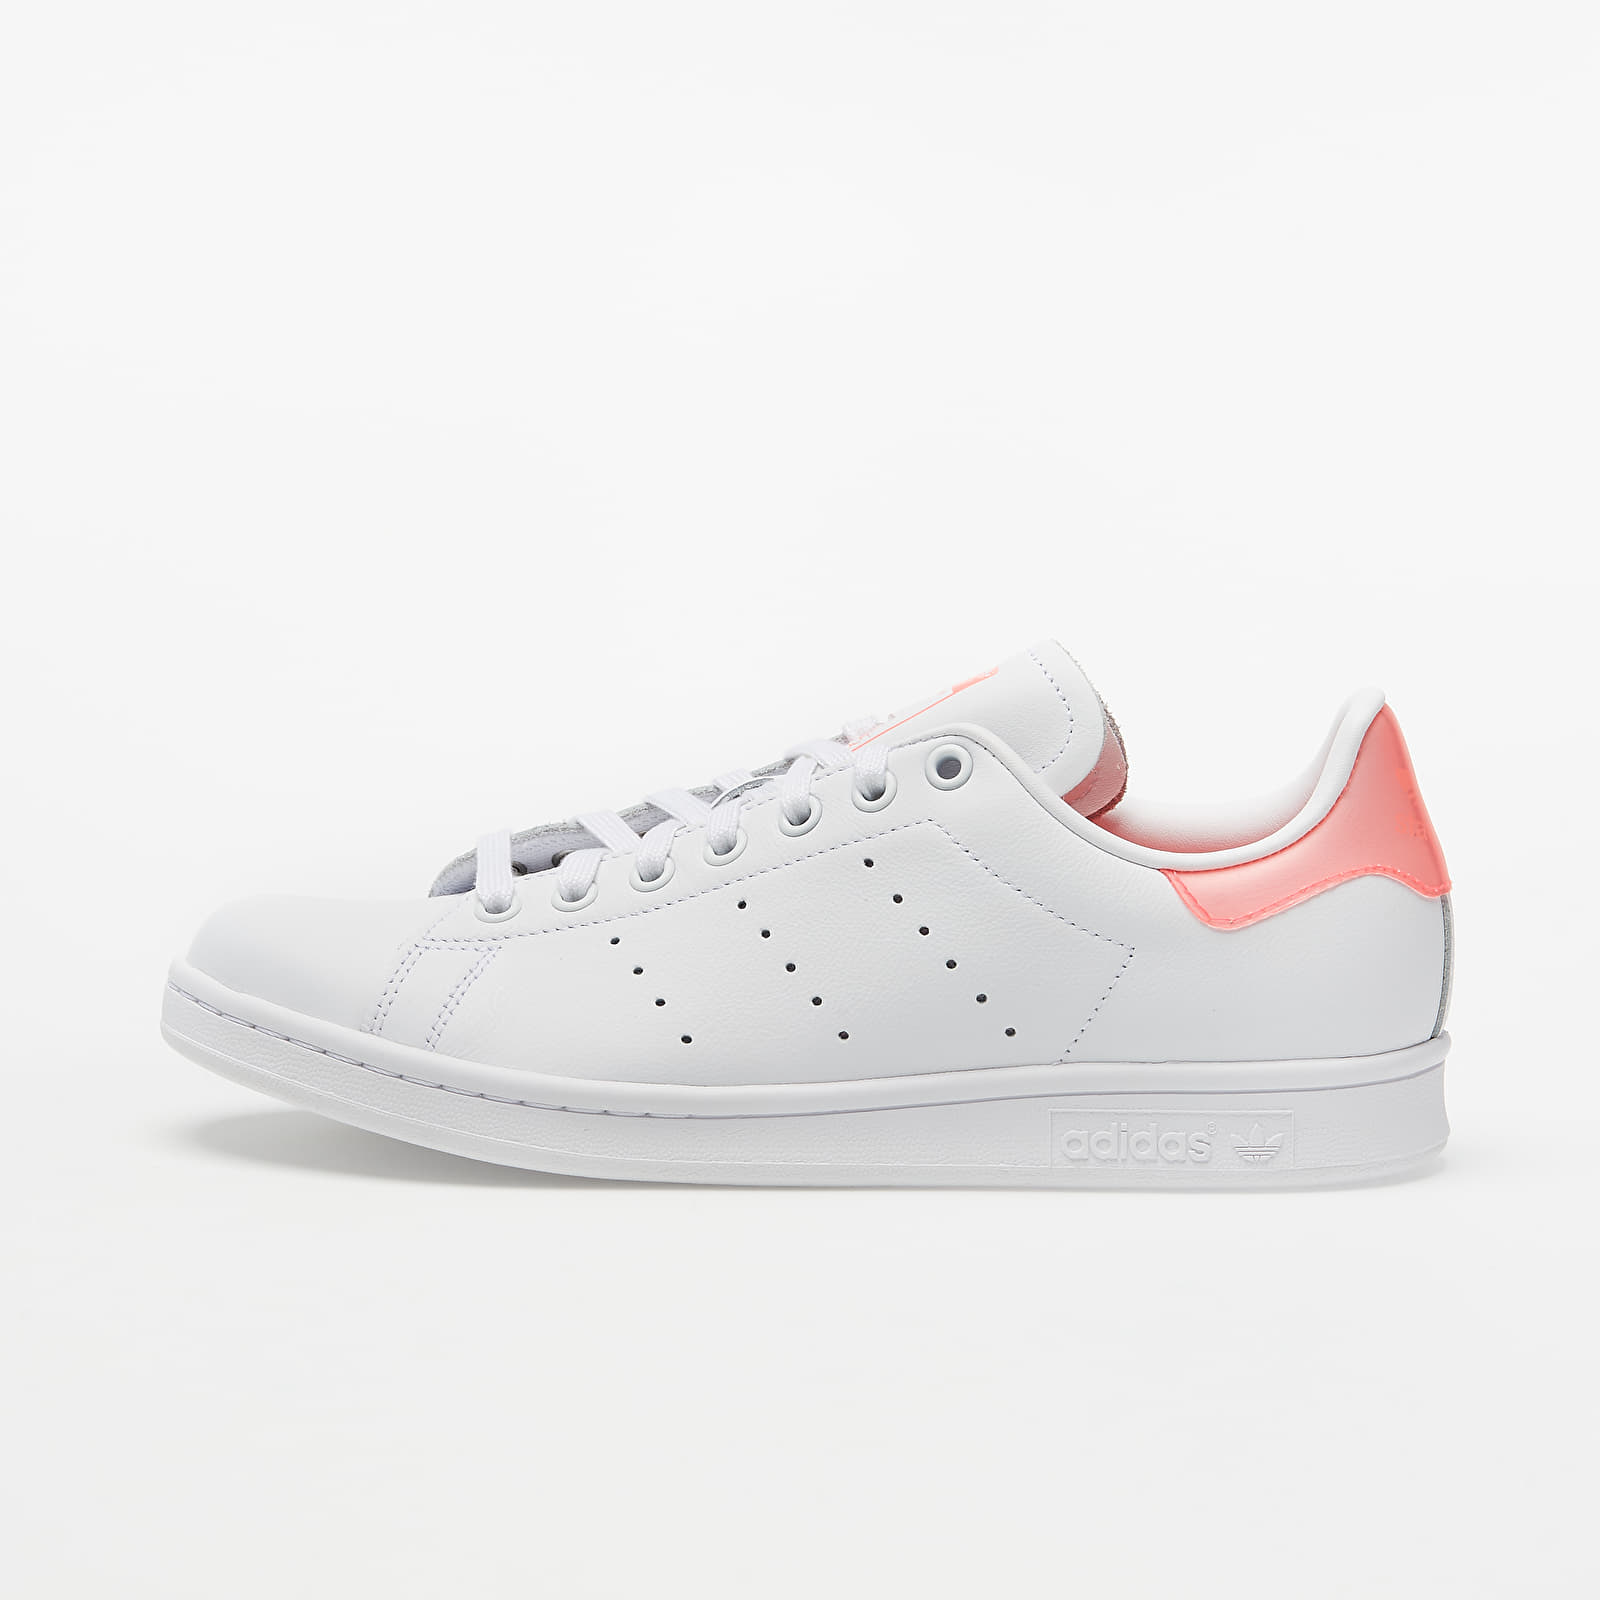 adidas Stan Smith W Ftw White/ Signature Pink/ Ftw White EUR 40